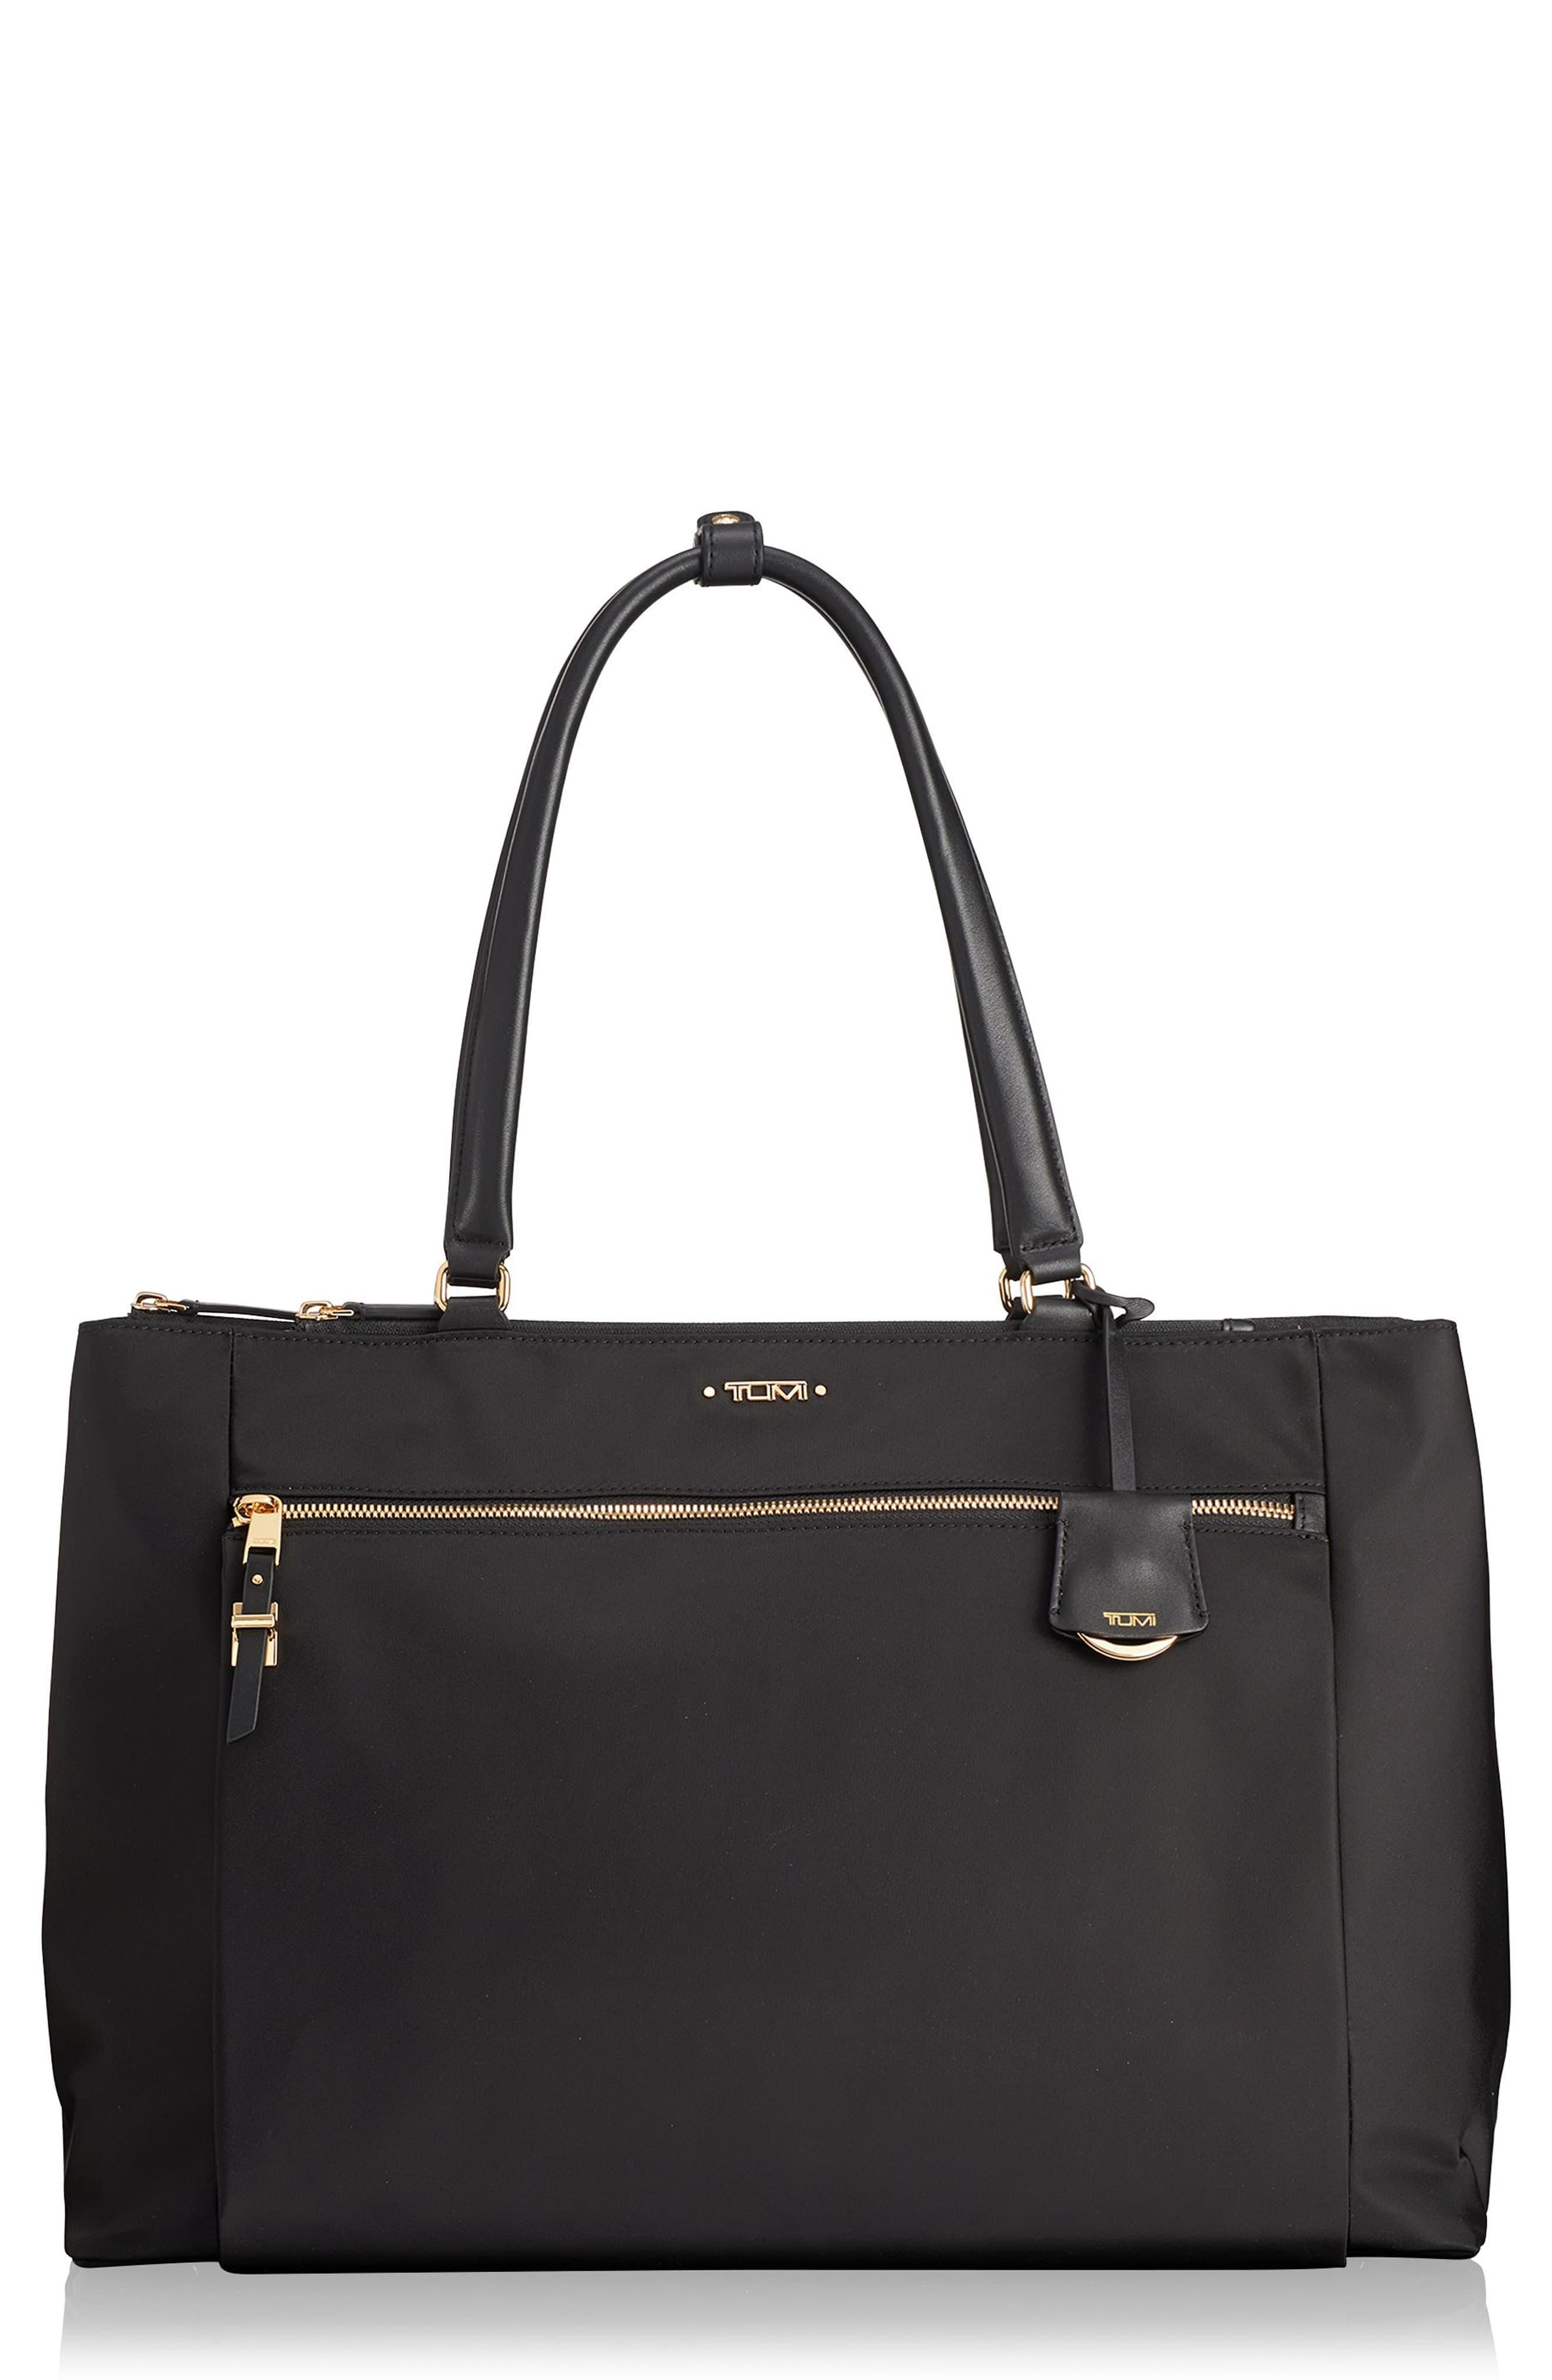 8fcbe40960bf03 Tumi Voyageur Sheryl Nylon Business Tote in Black - Save 12% - Lyst